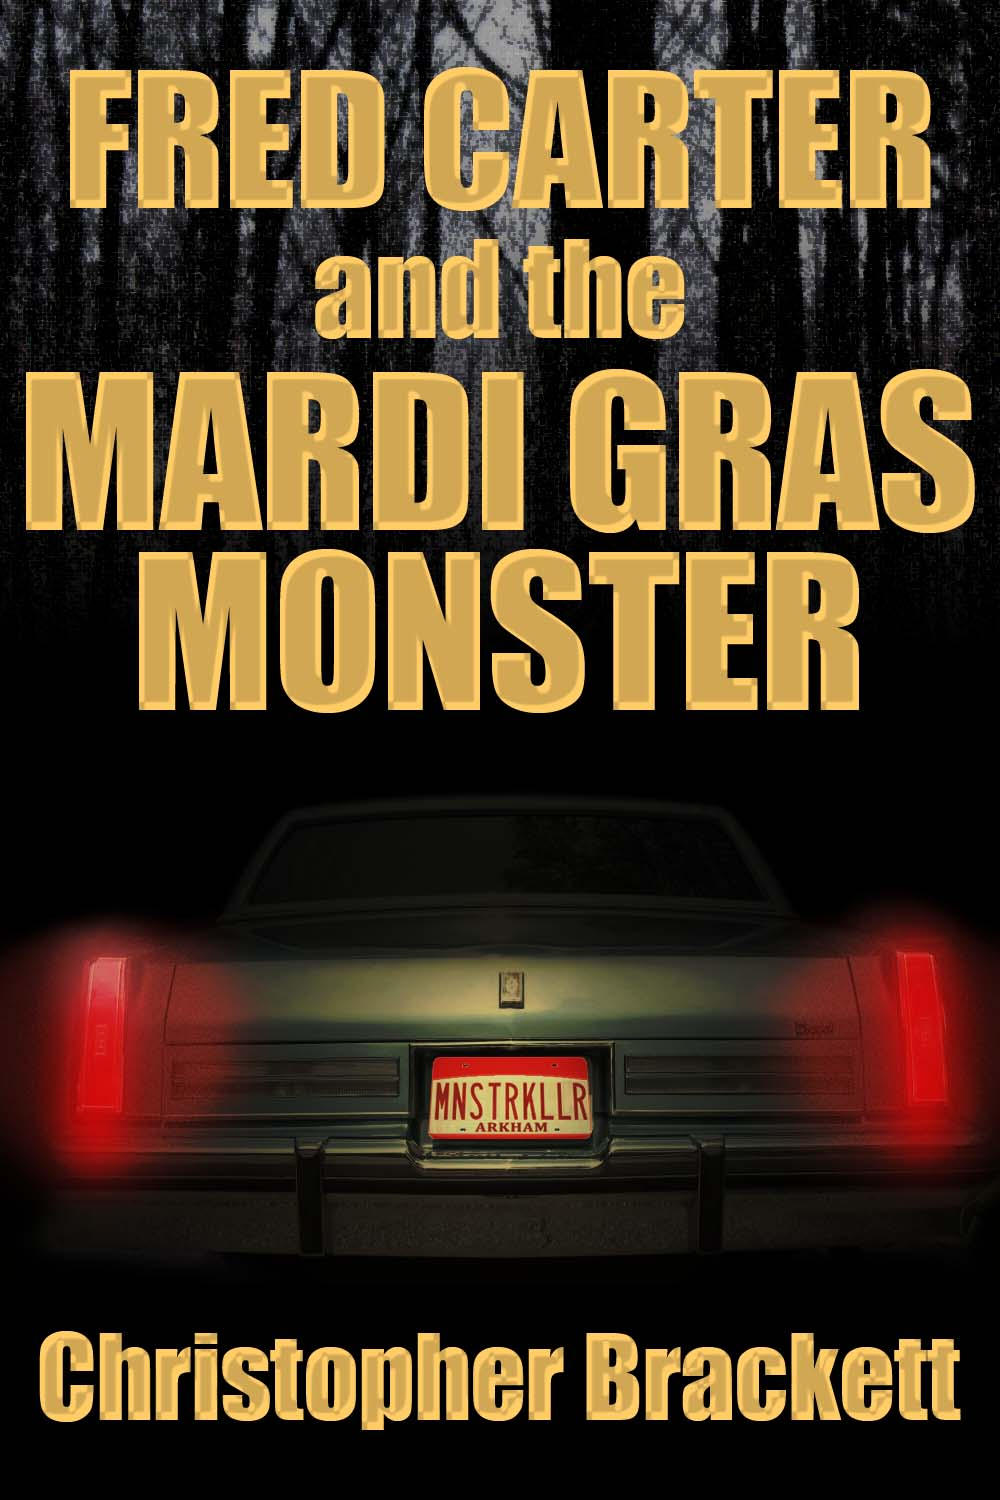 Fred Carter and the Mardi Gras Monster Ch 2 Start the Engine